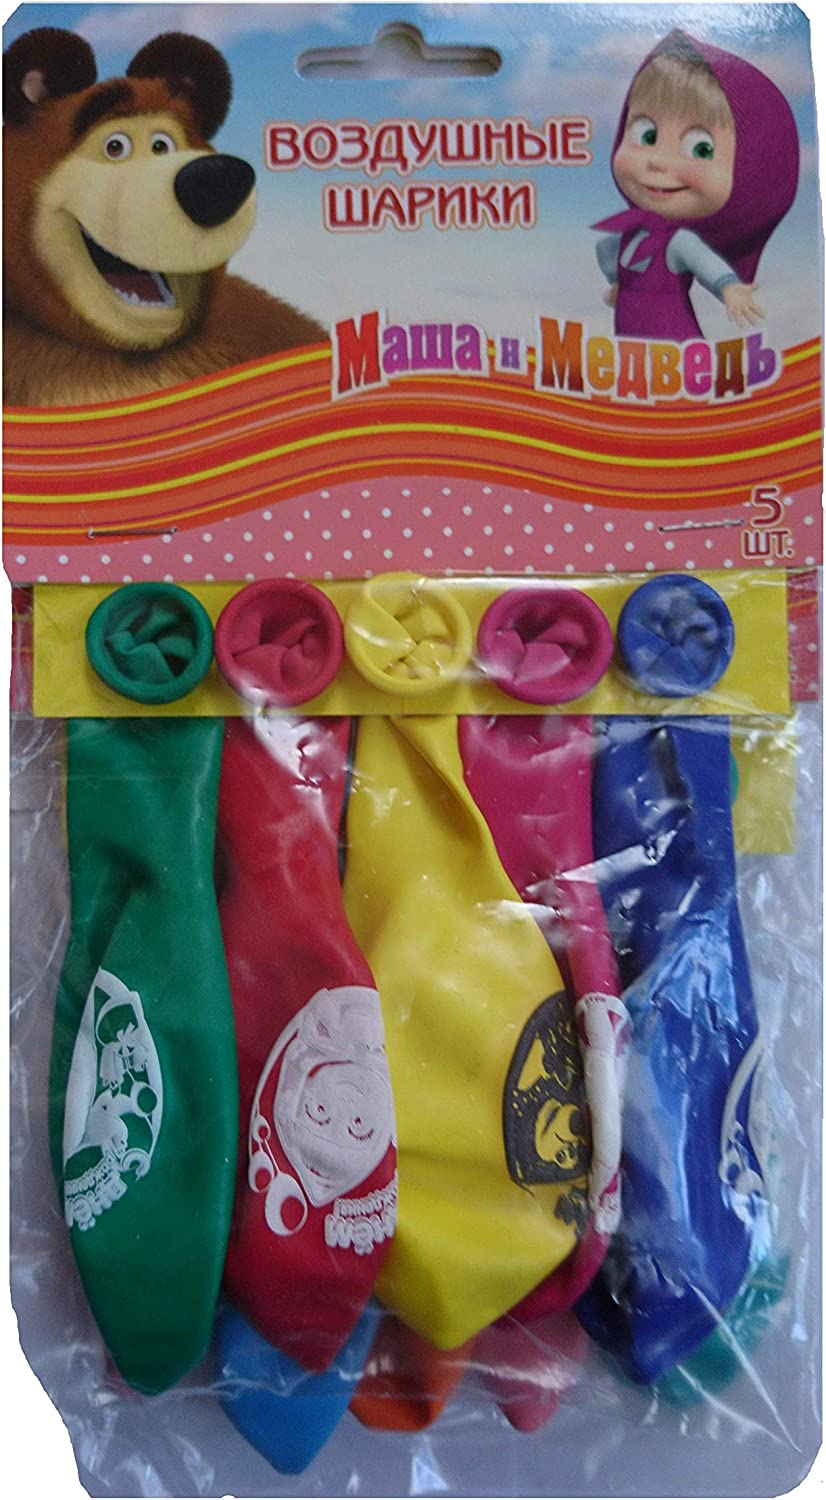 Large Masha And The Bear Balloon Foil Figures Girls Toy Birthday Party Christmas